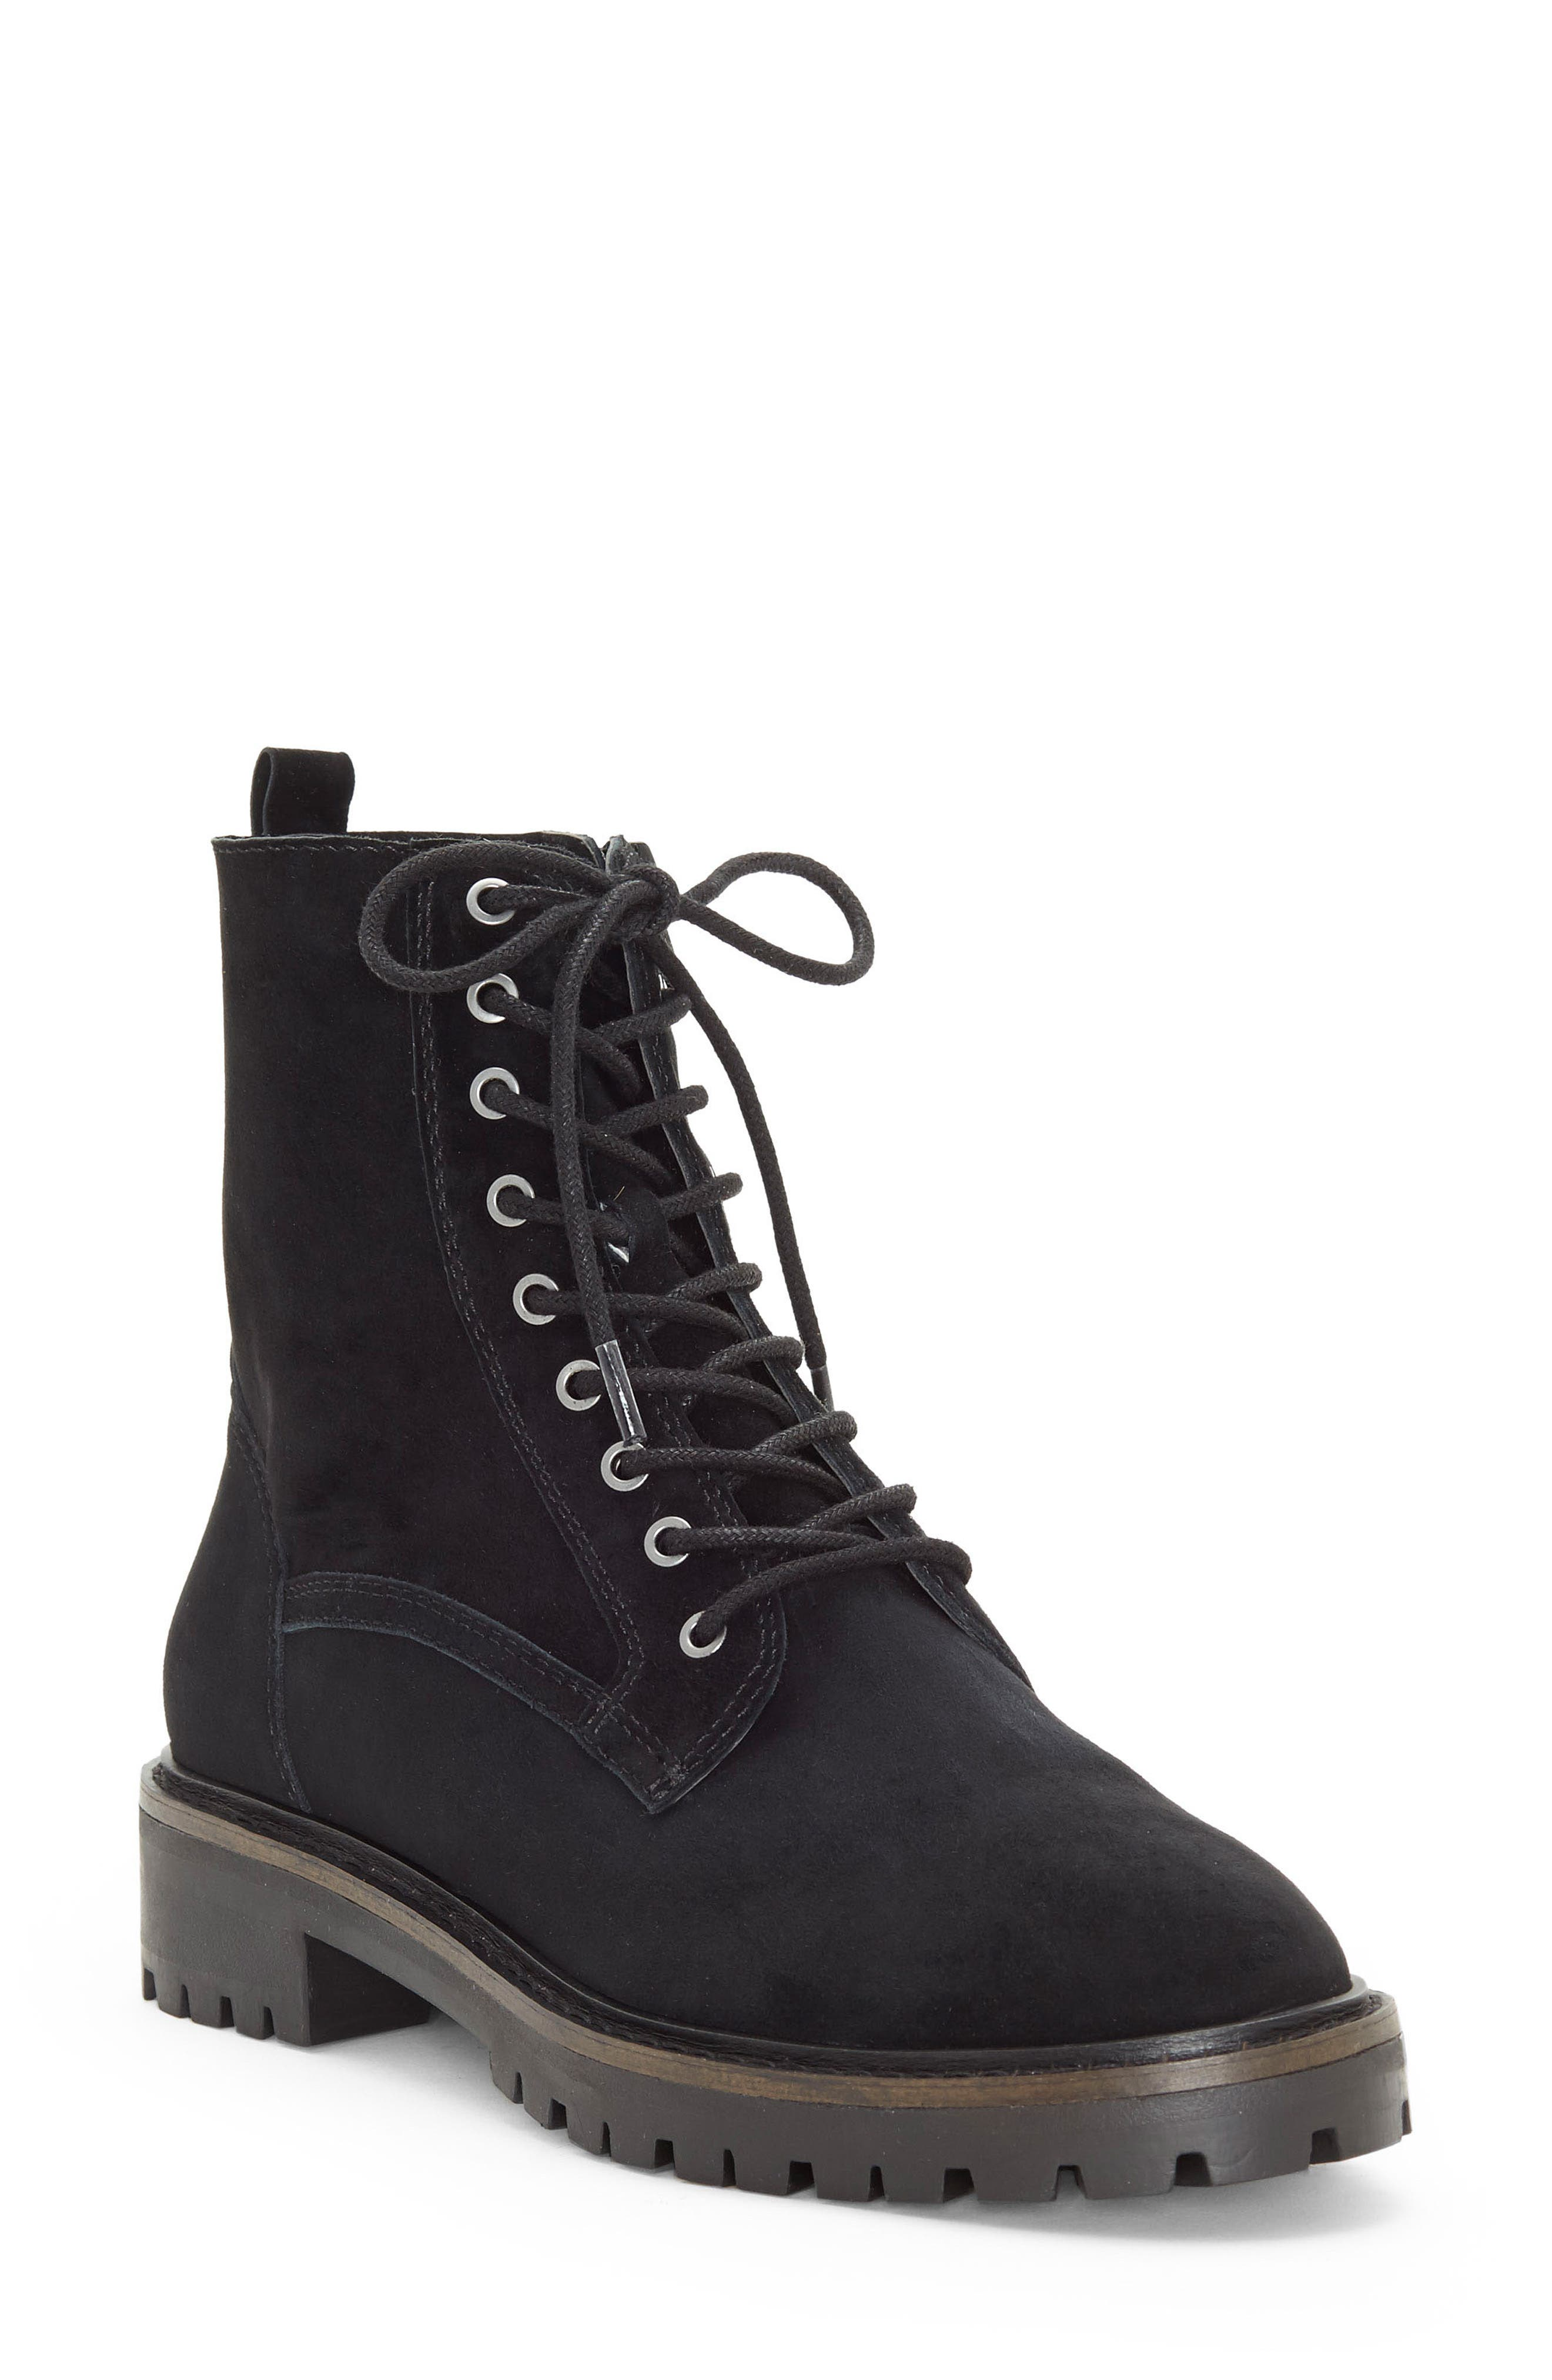 LUCKY BRAND Idara Lace-Up Bootie, Main, color, 001